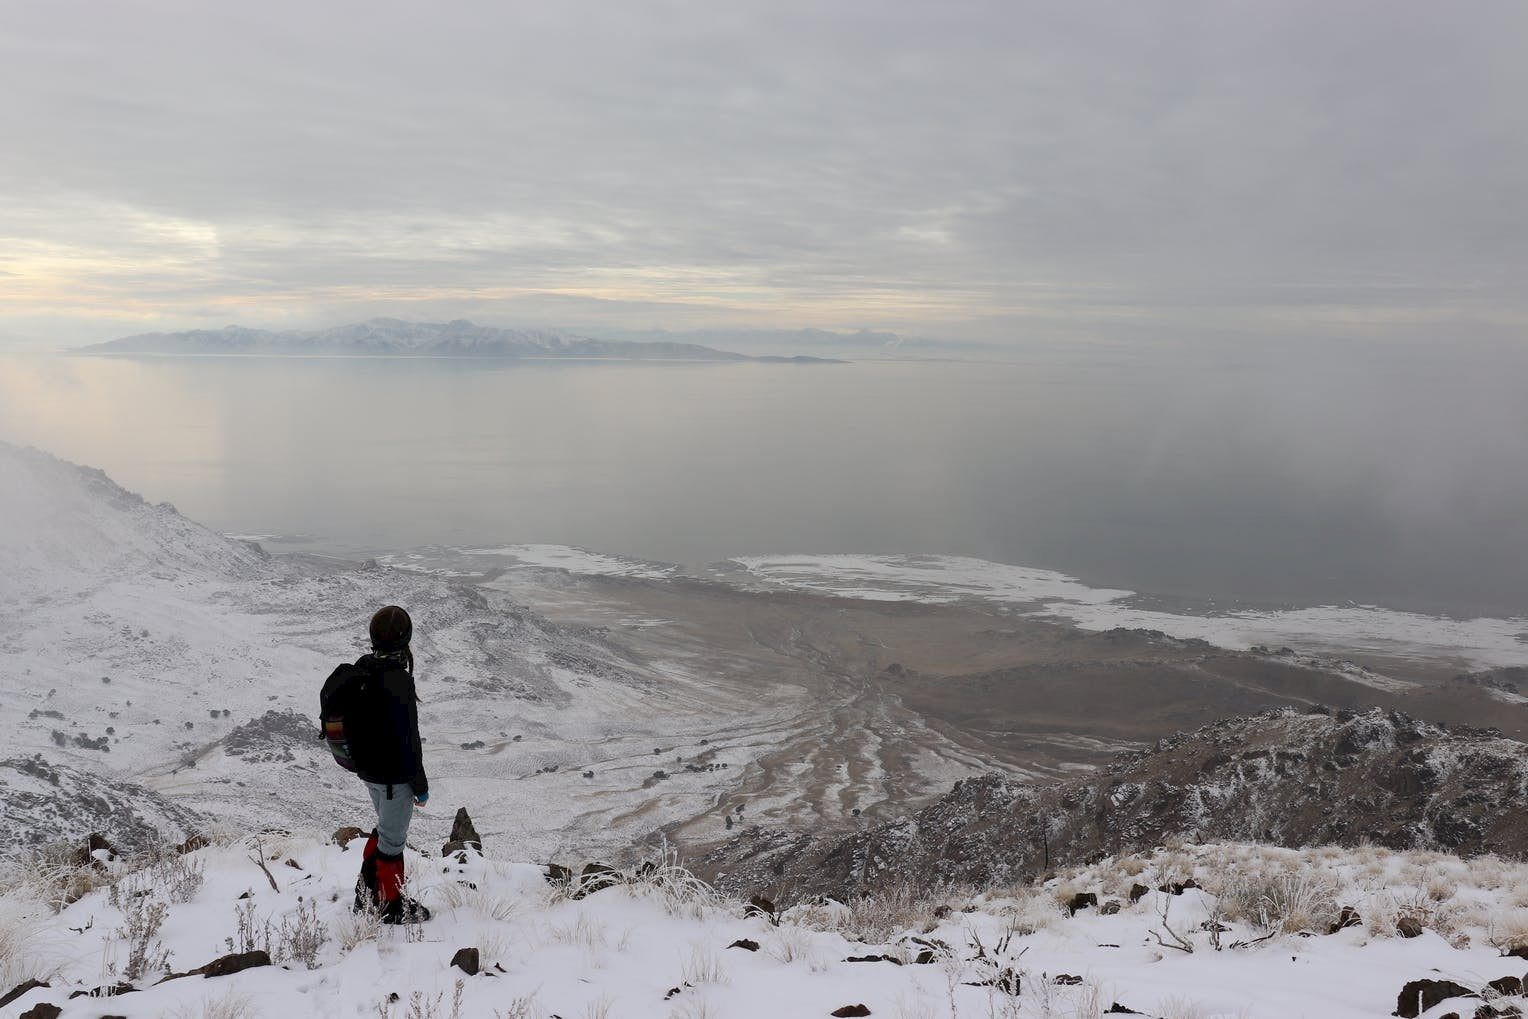 Hiker in gaiters and winter clothes overlooking snow dusted island from a hilltop.